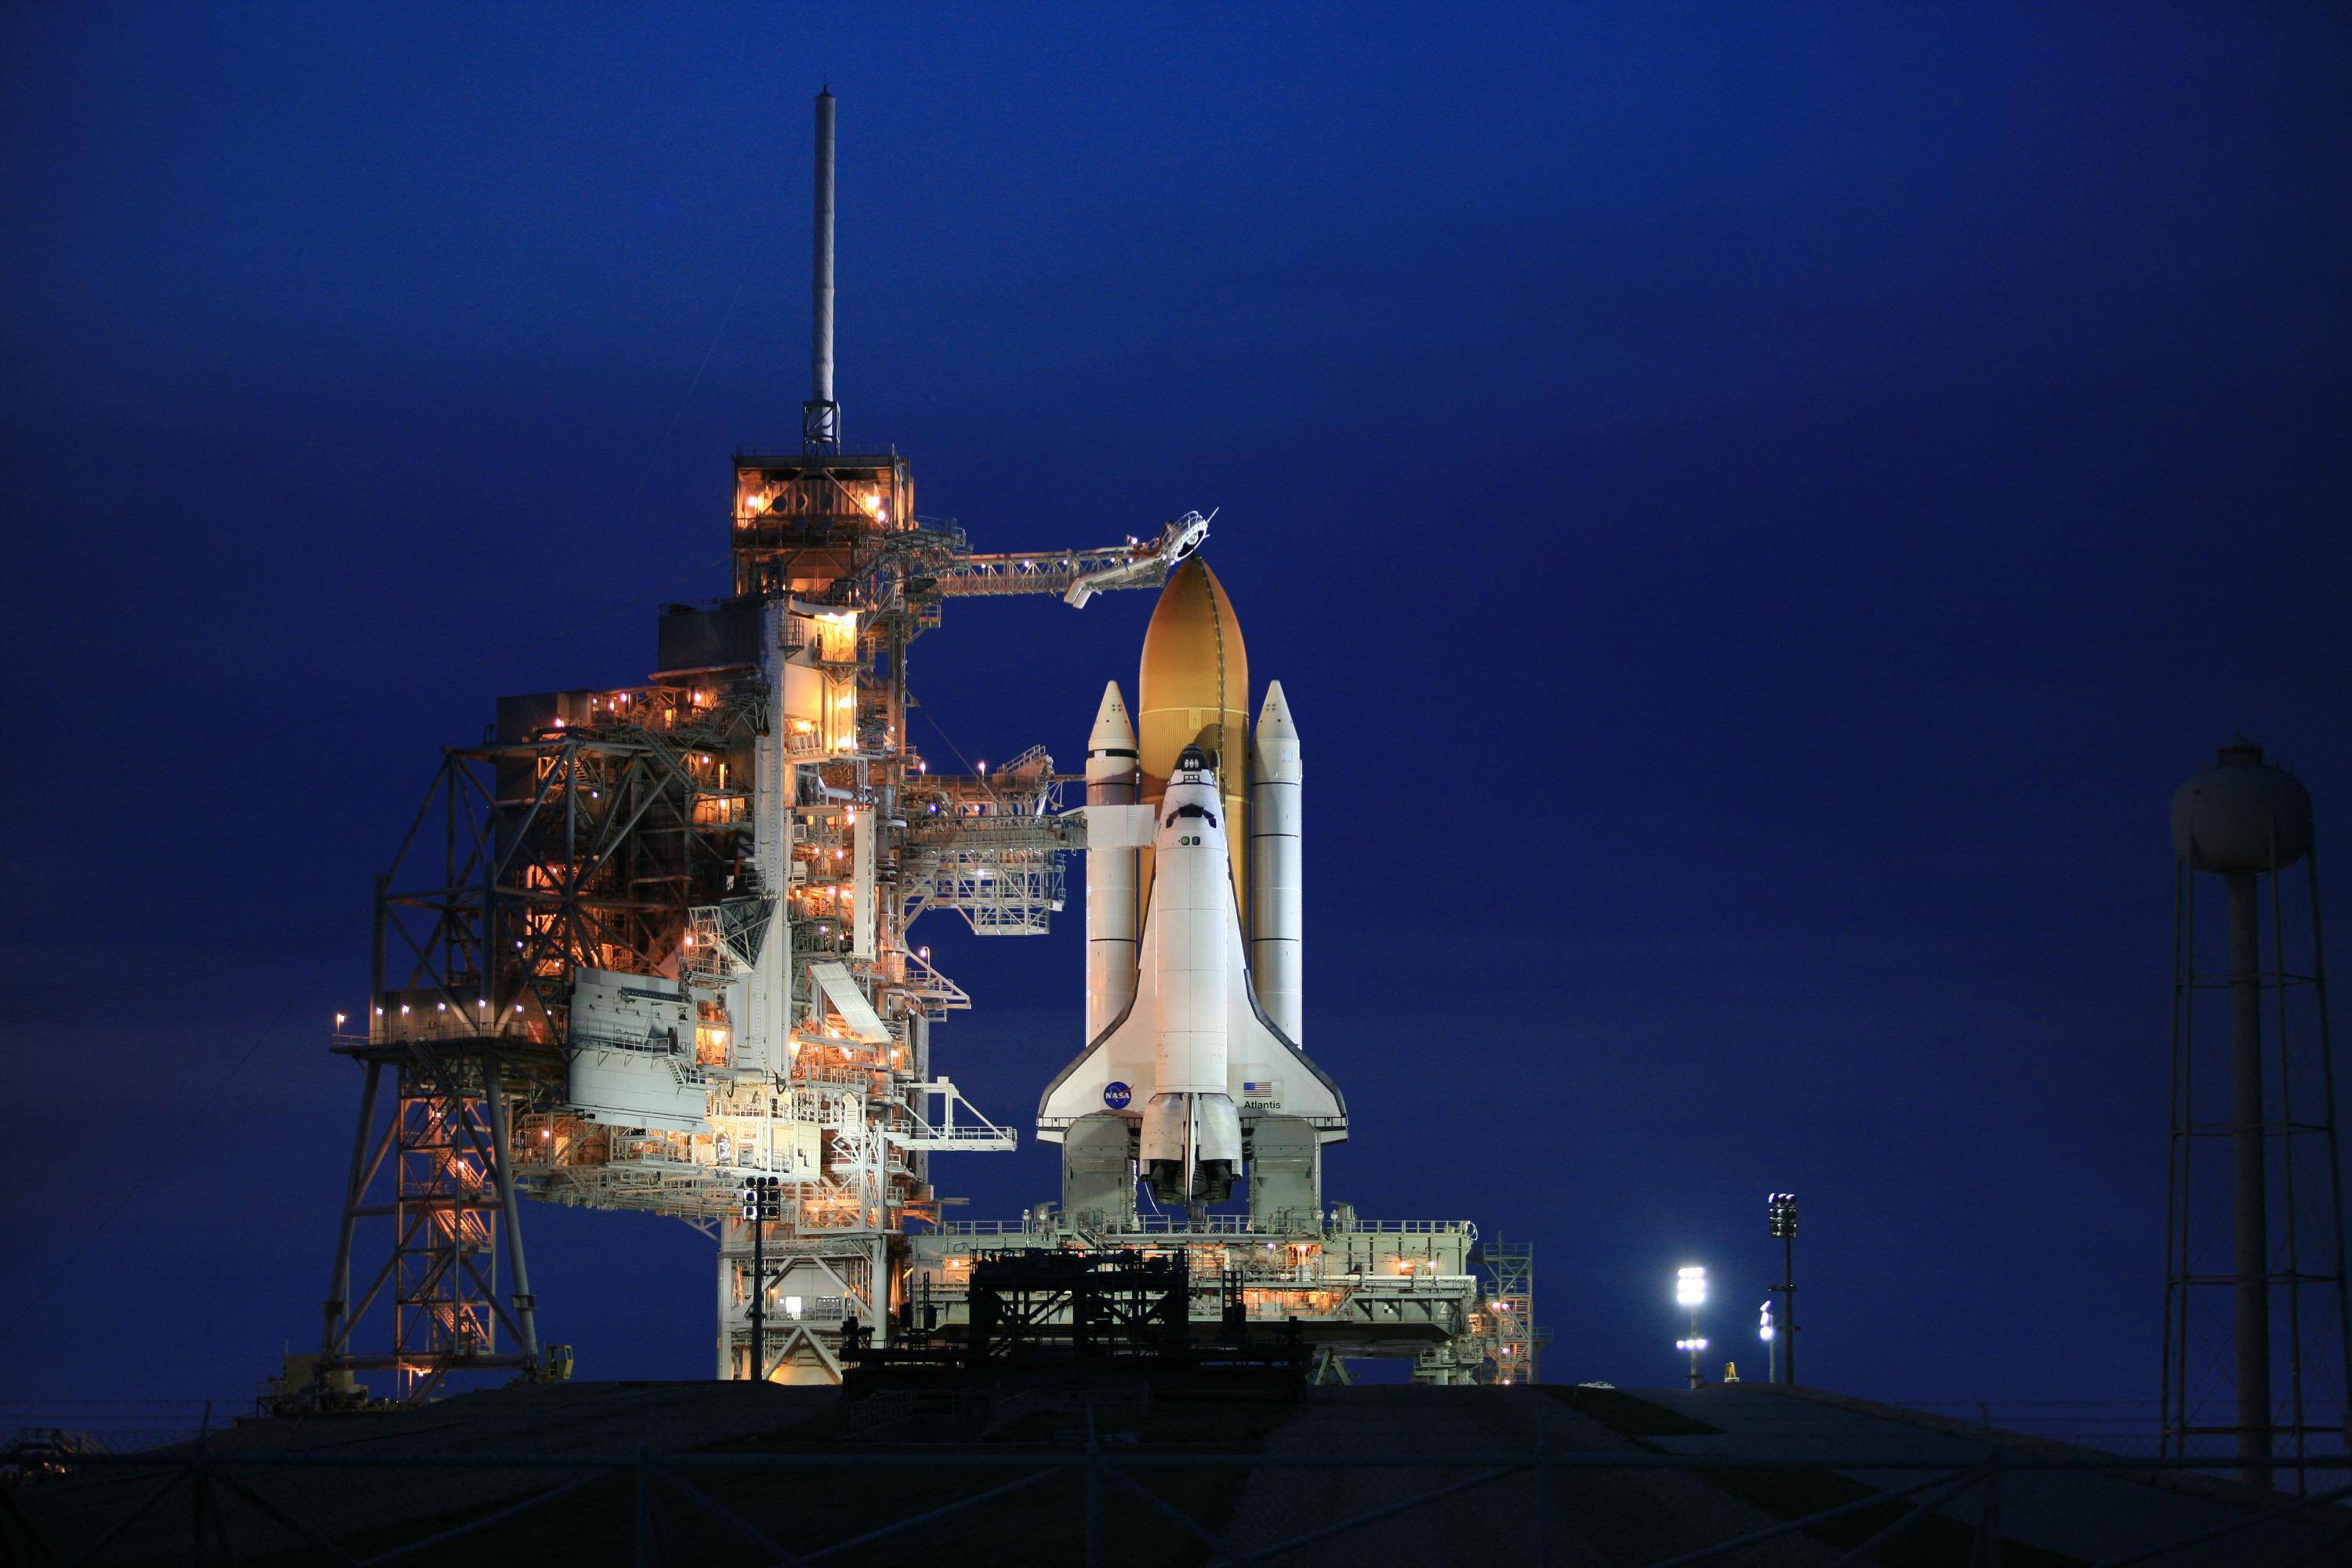 erste space shuttle mission - photo #29